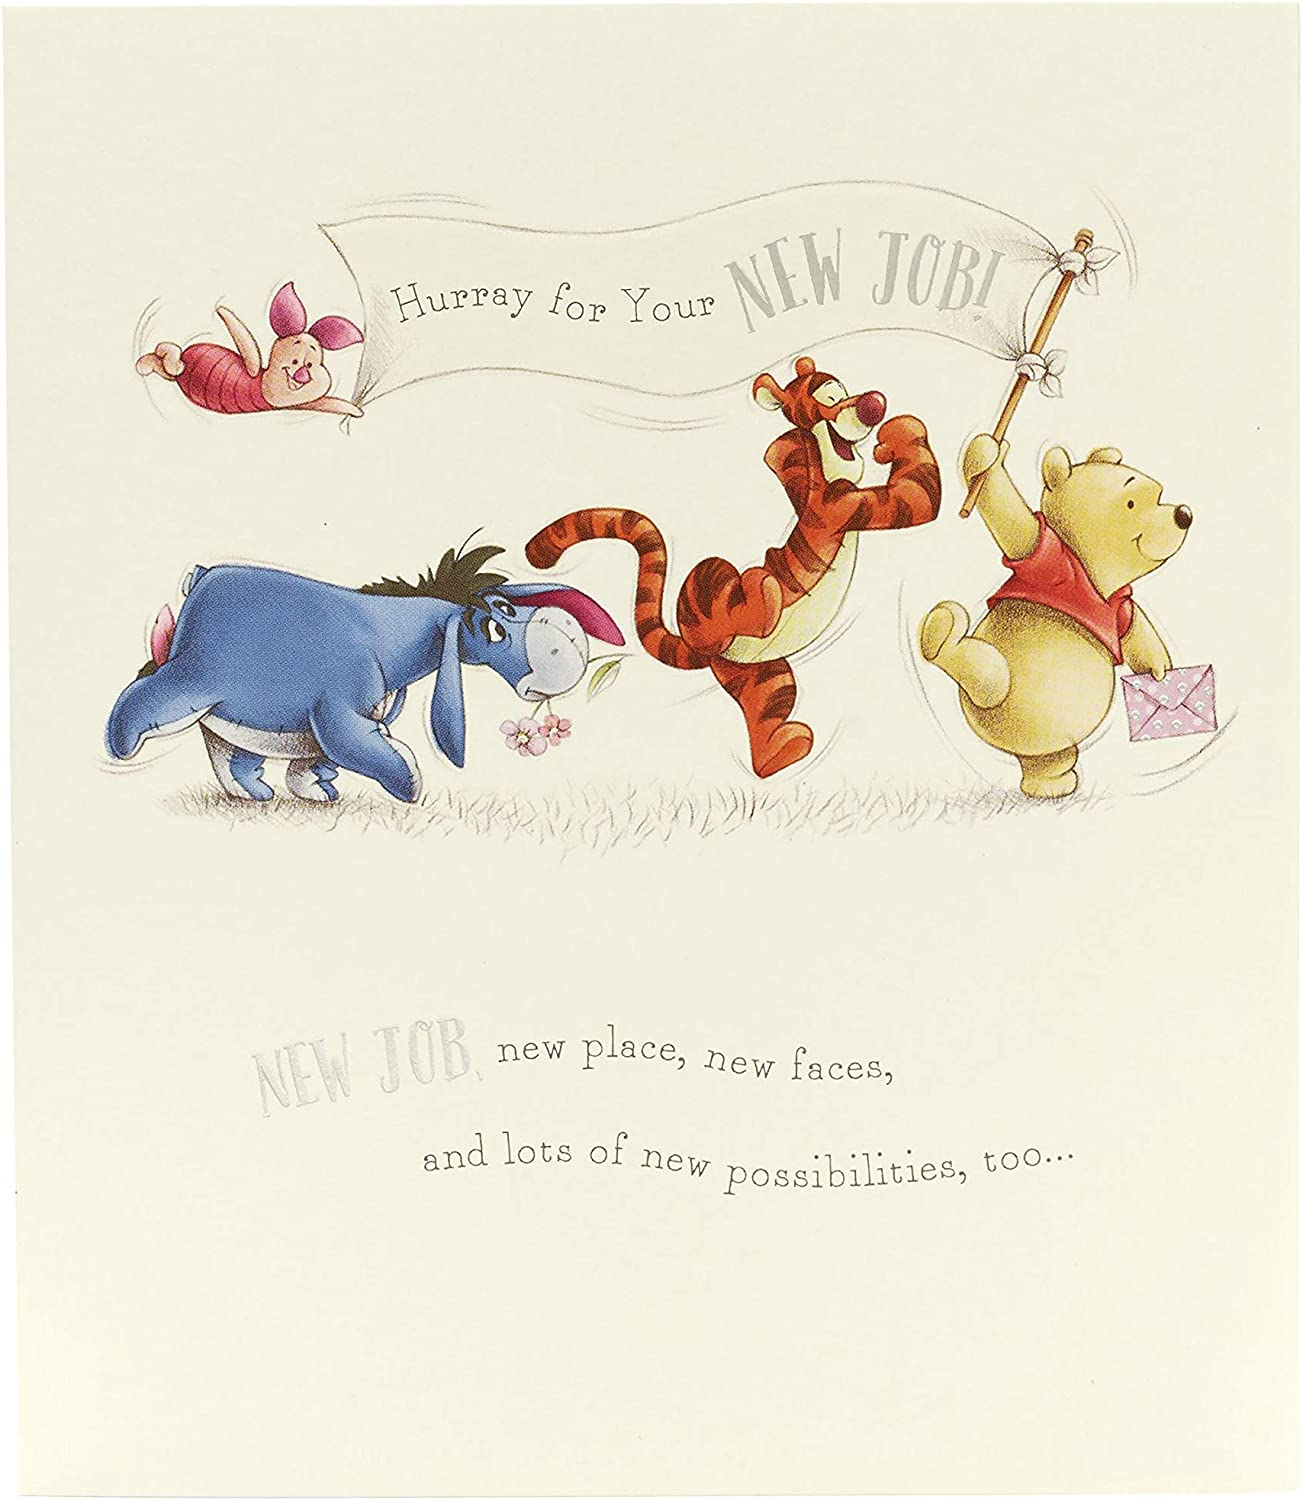 Amazon Com Congratulations New Job Card New Job Card Winnie The Pooh Ideal Gift Card For New Job Disney Office Products